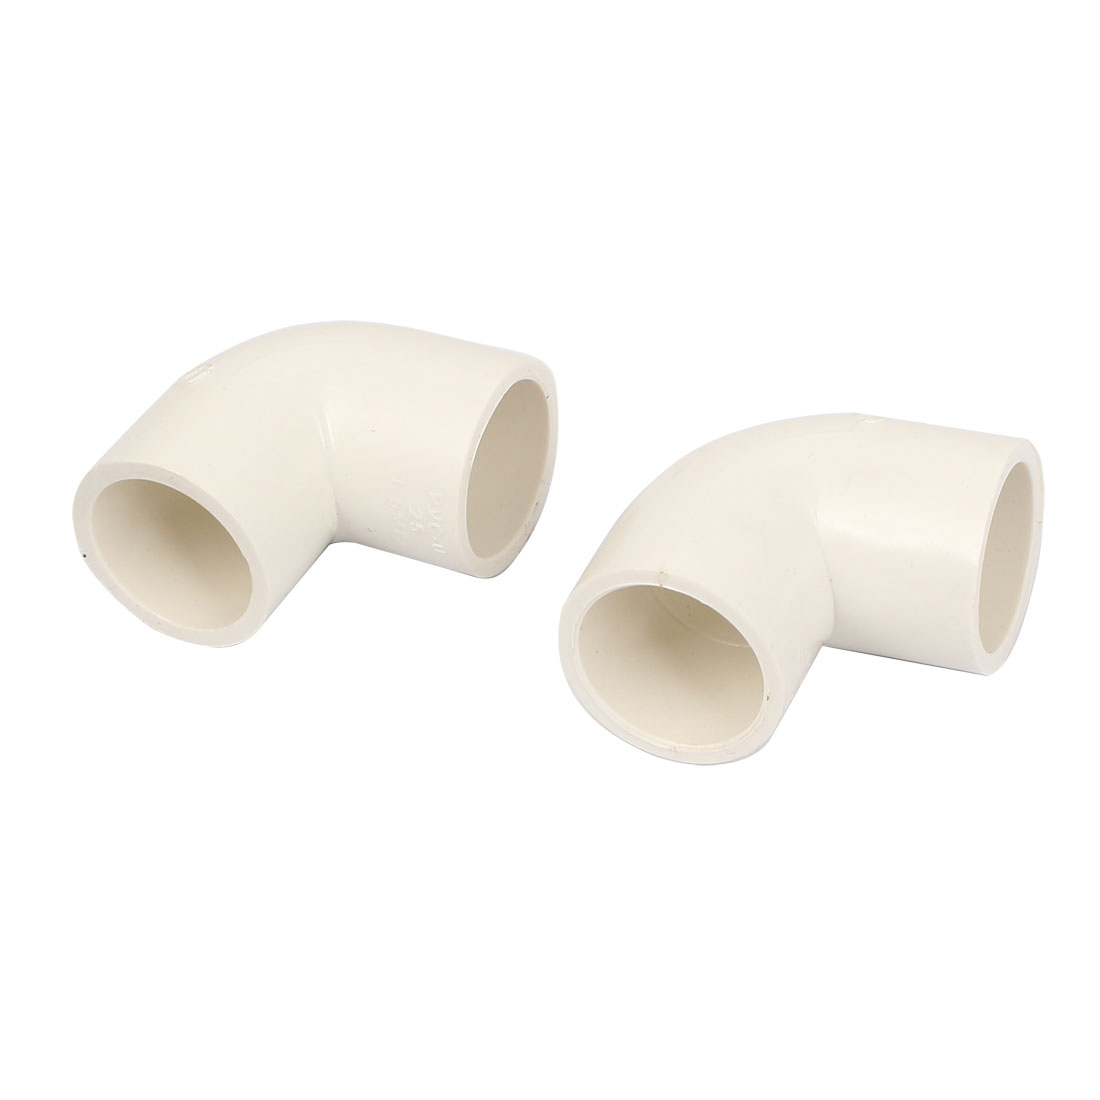 90 Degree Elbow Type PVC-U Pipe Connector Adapter Fitting White 2pcs